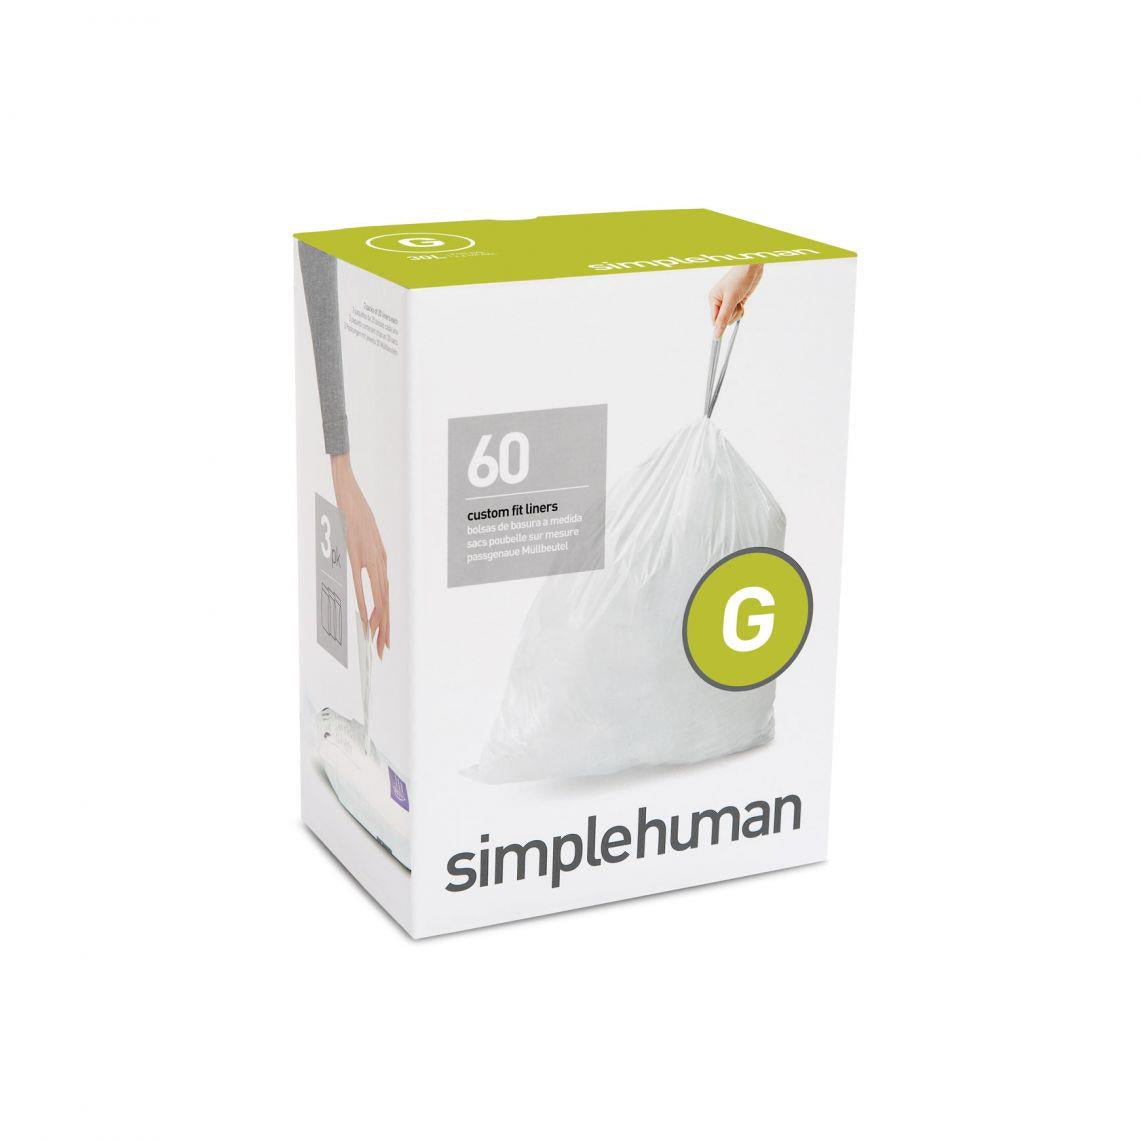 SImplehuman Code G Custom Fit Waste Liner, 30L